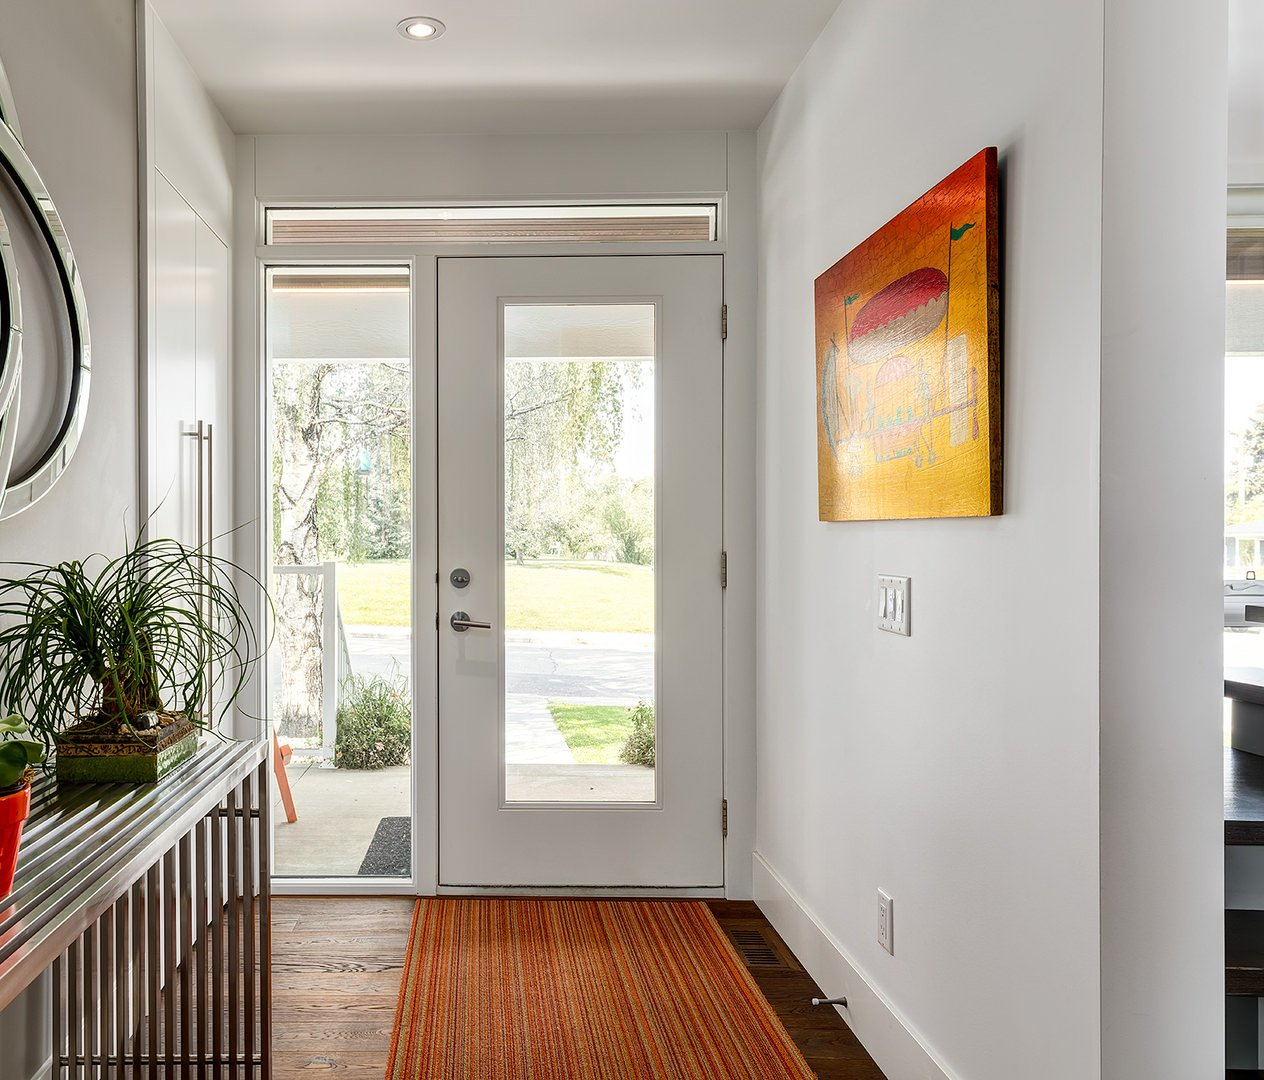 Small bright foyer with white walls featuring an artistic wall art. The flooring with a rug looks perfect with the hallway's style.